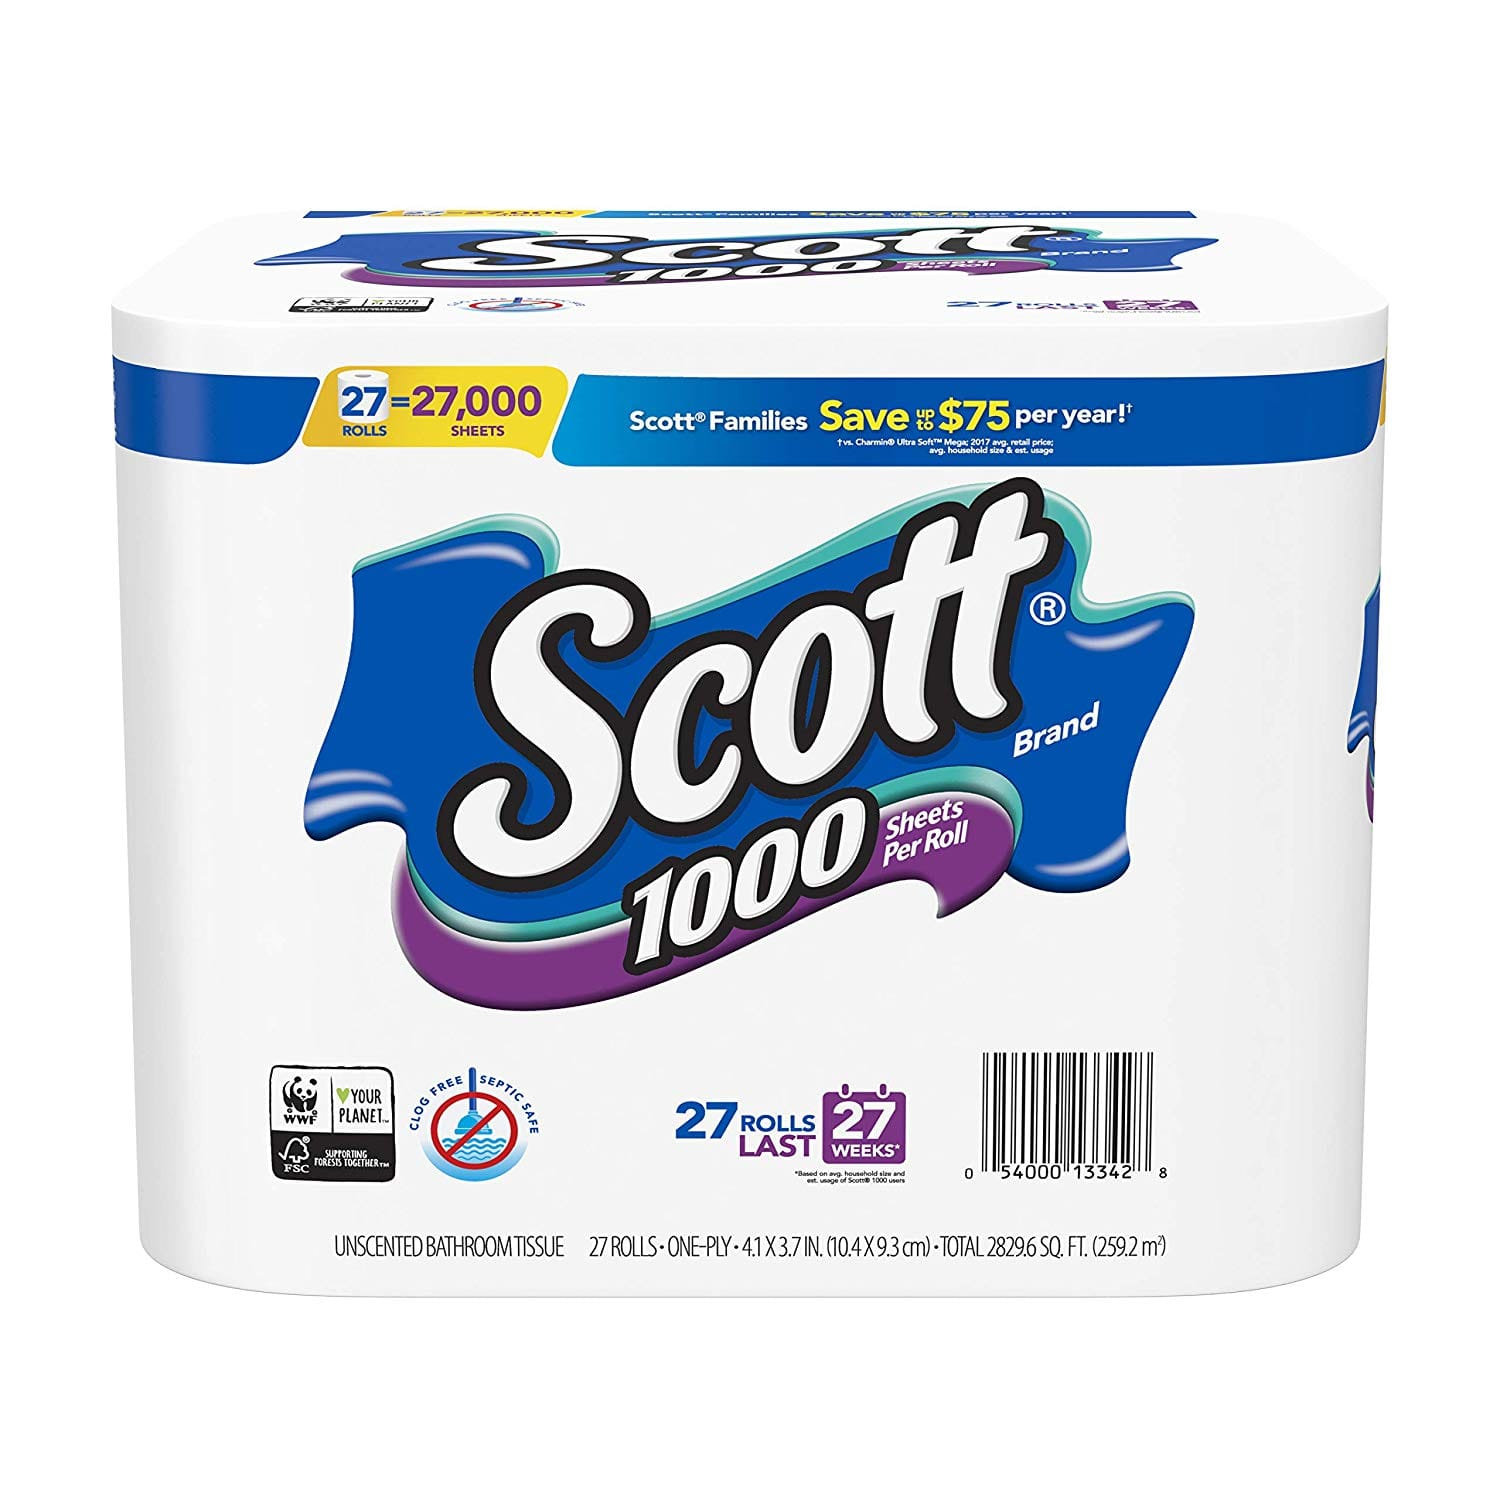 27-Count Scott 1000-Sheet One Ply Toilet Paper Rolls 3 for $36.25 w/ S&S + Free S/H